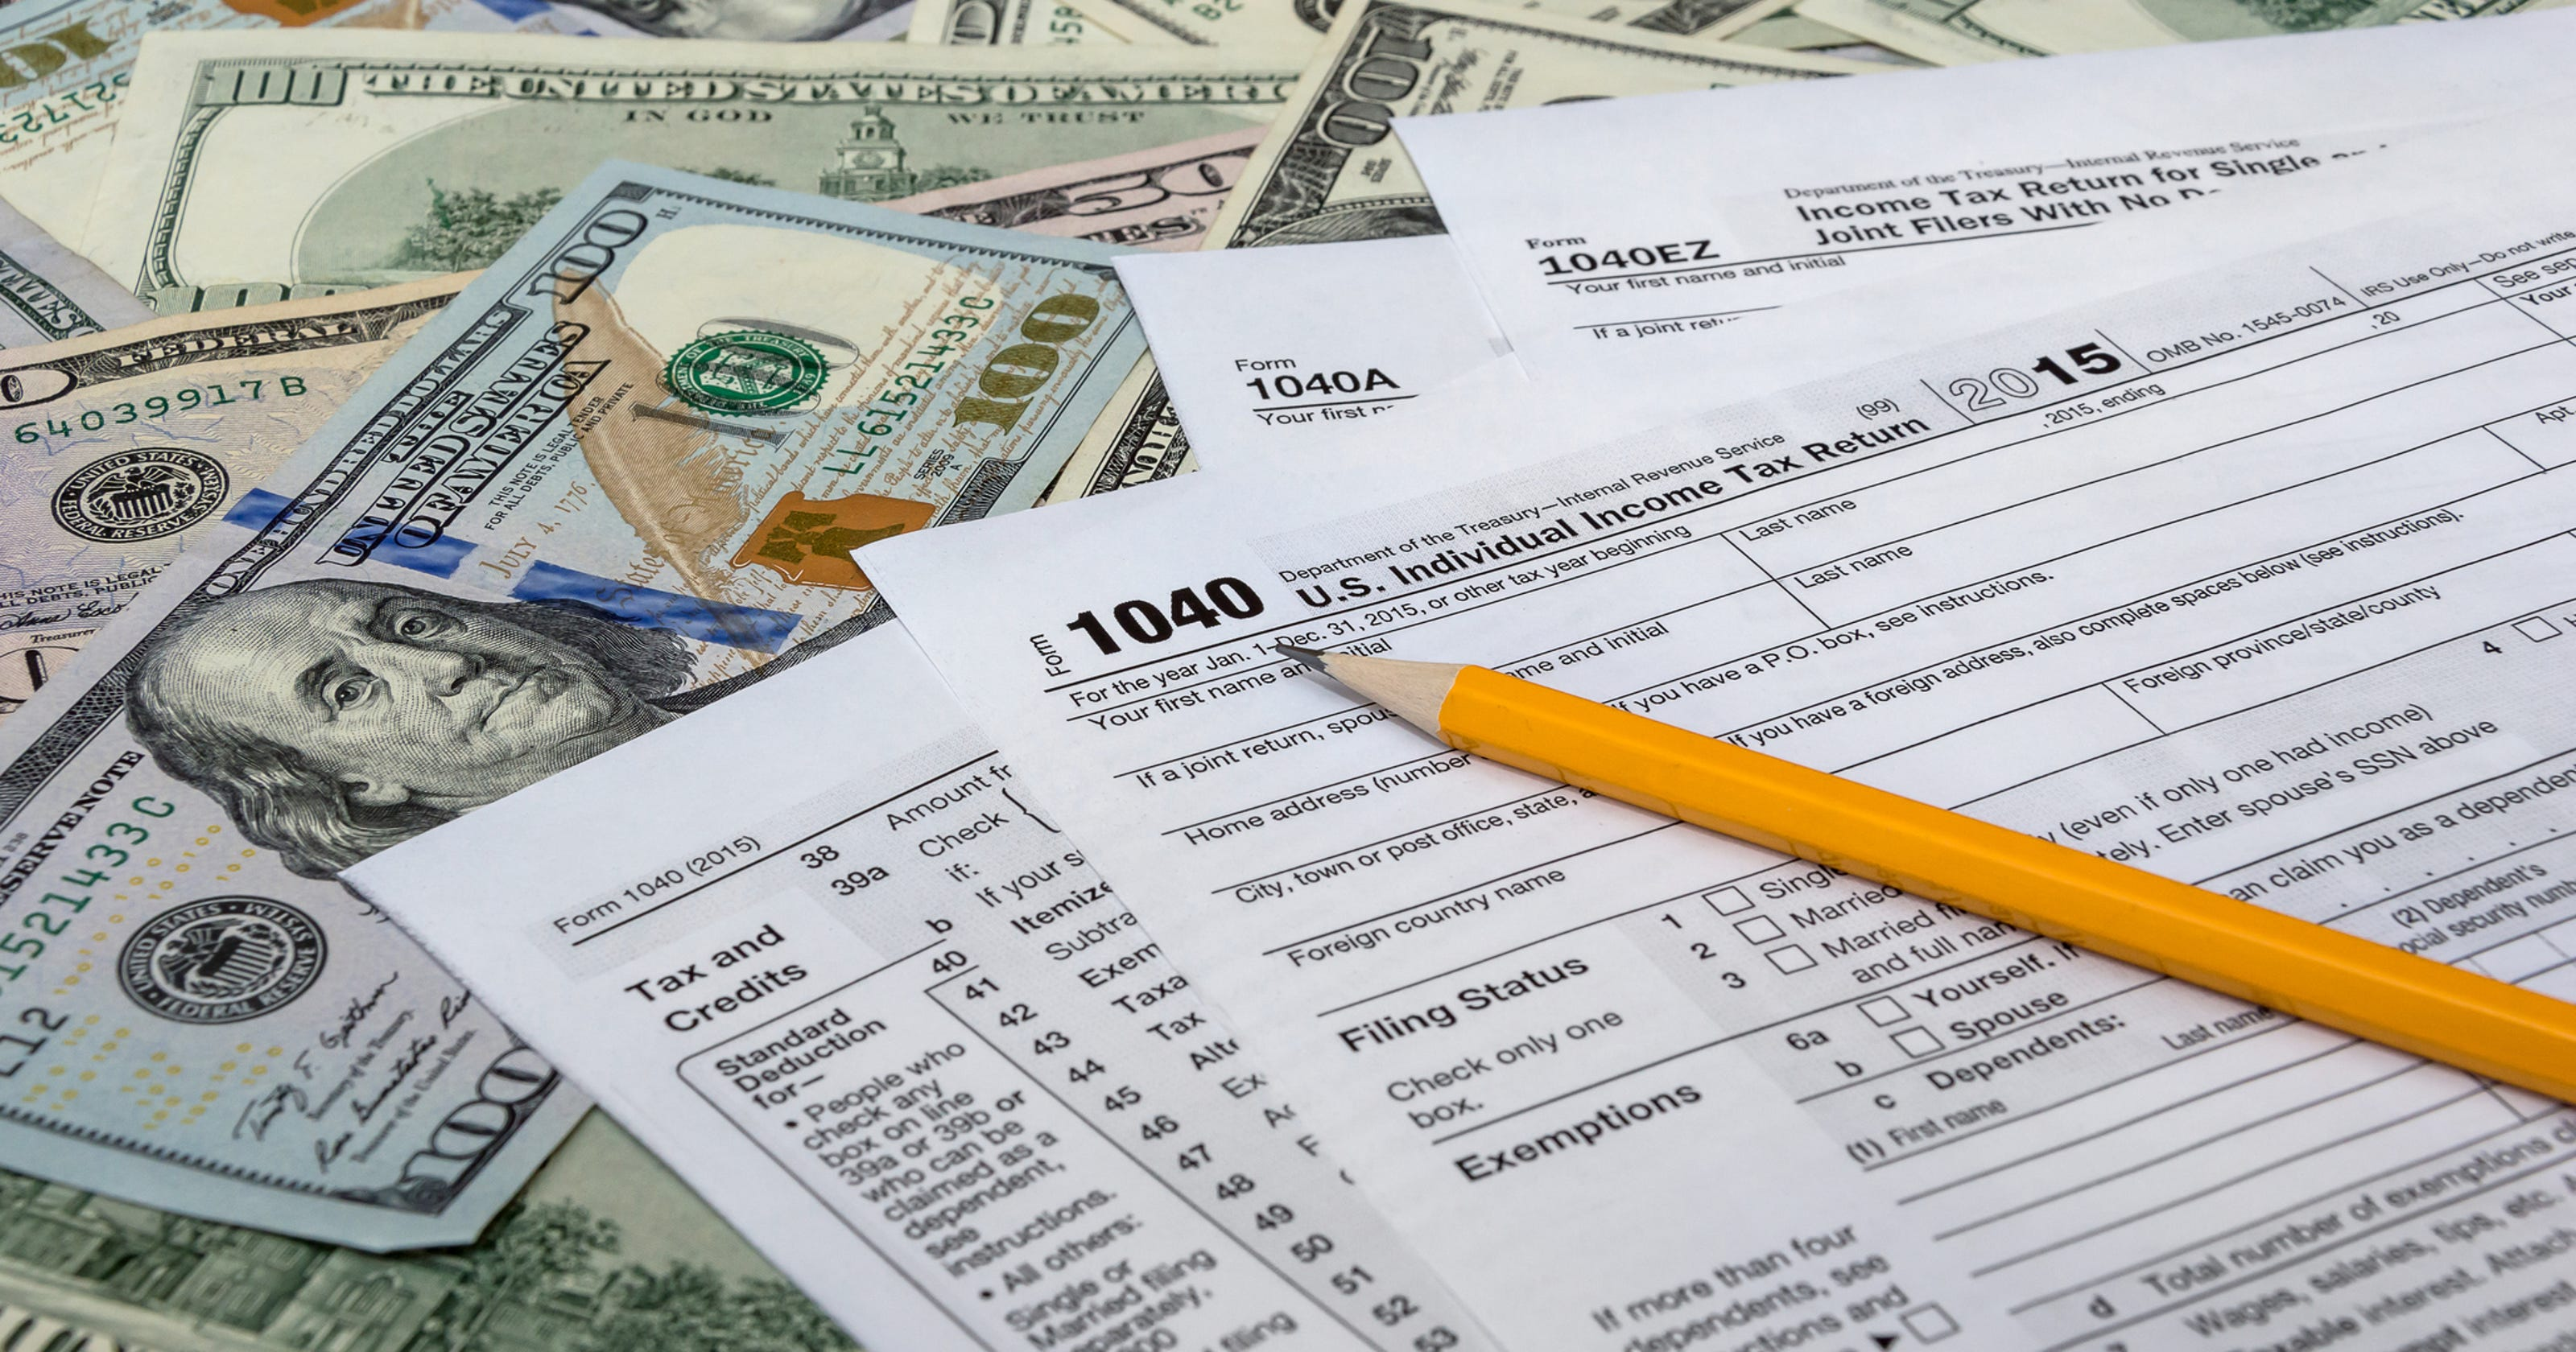 How Does Your Income Stack Up With Other Taxpayers Comparing Returns